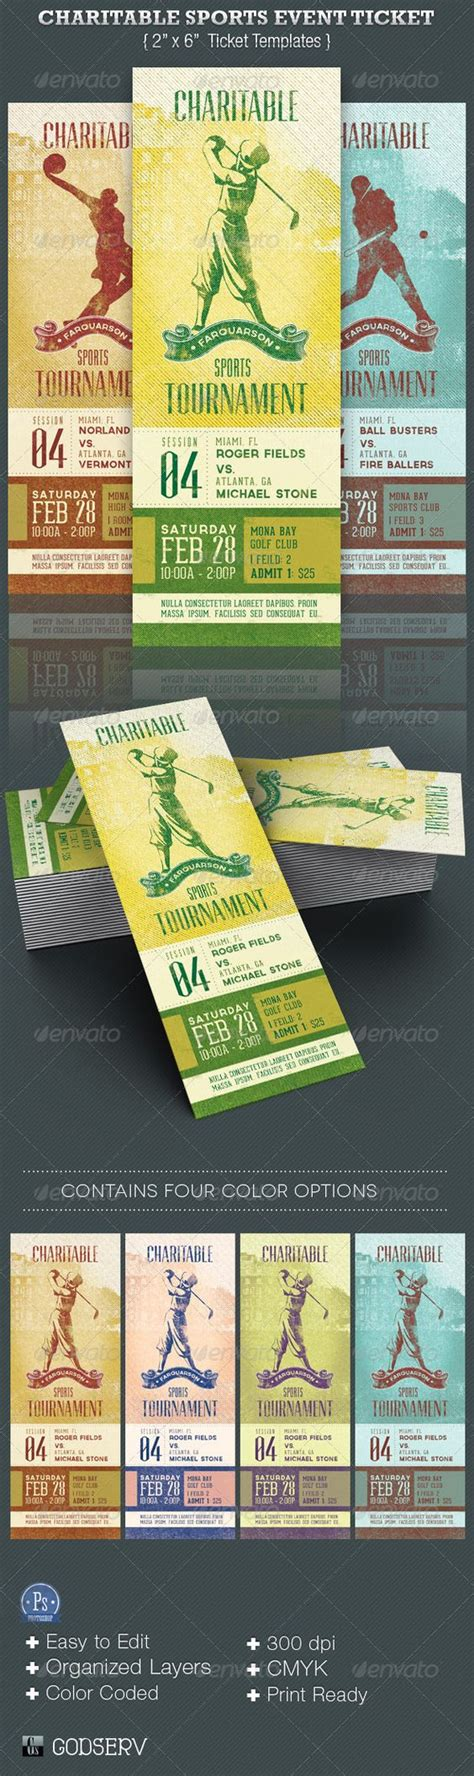 sport ticket template charitable sports event ticket template sports events